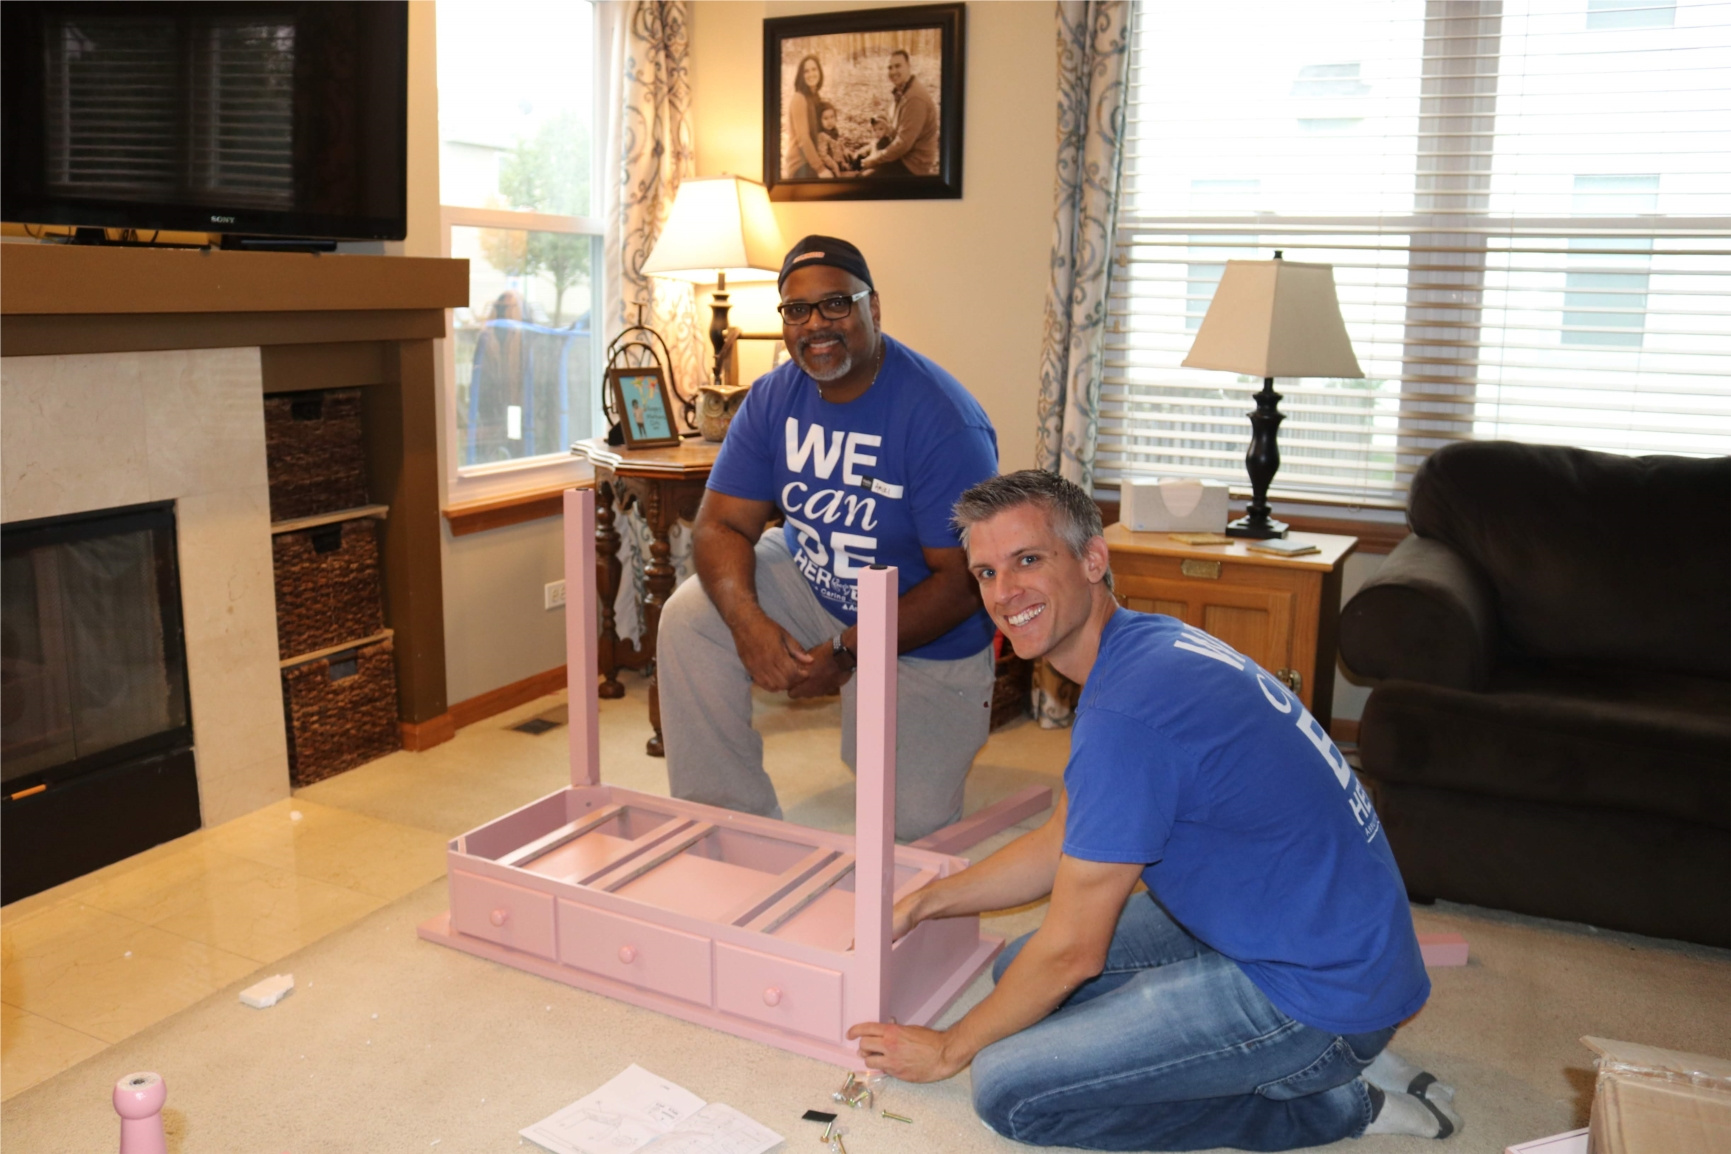 Assurance volunteers help build a dream bedroom for a terminally ill child through the Assurance Caring Together partnership with Special Spaces.